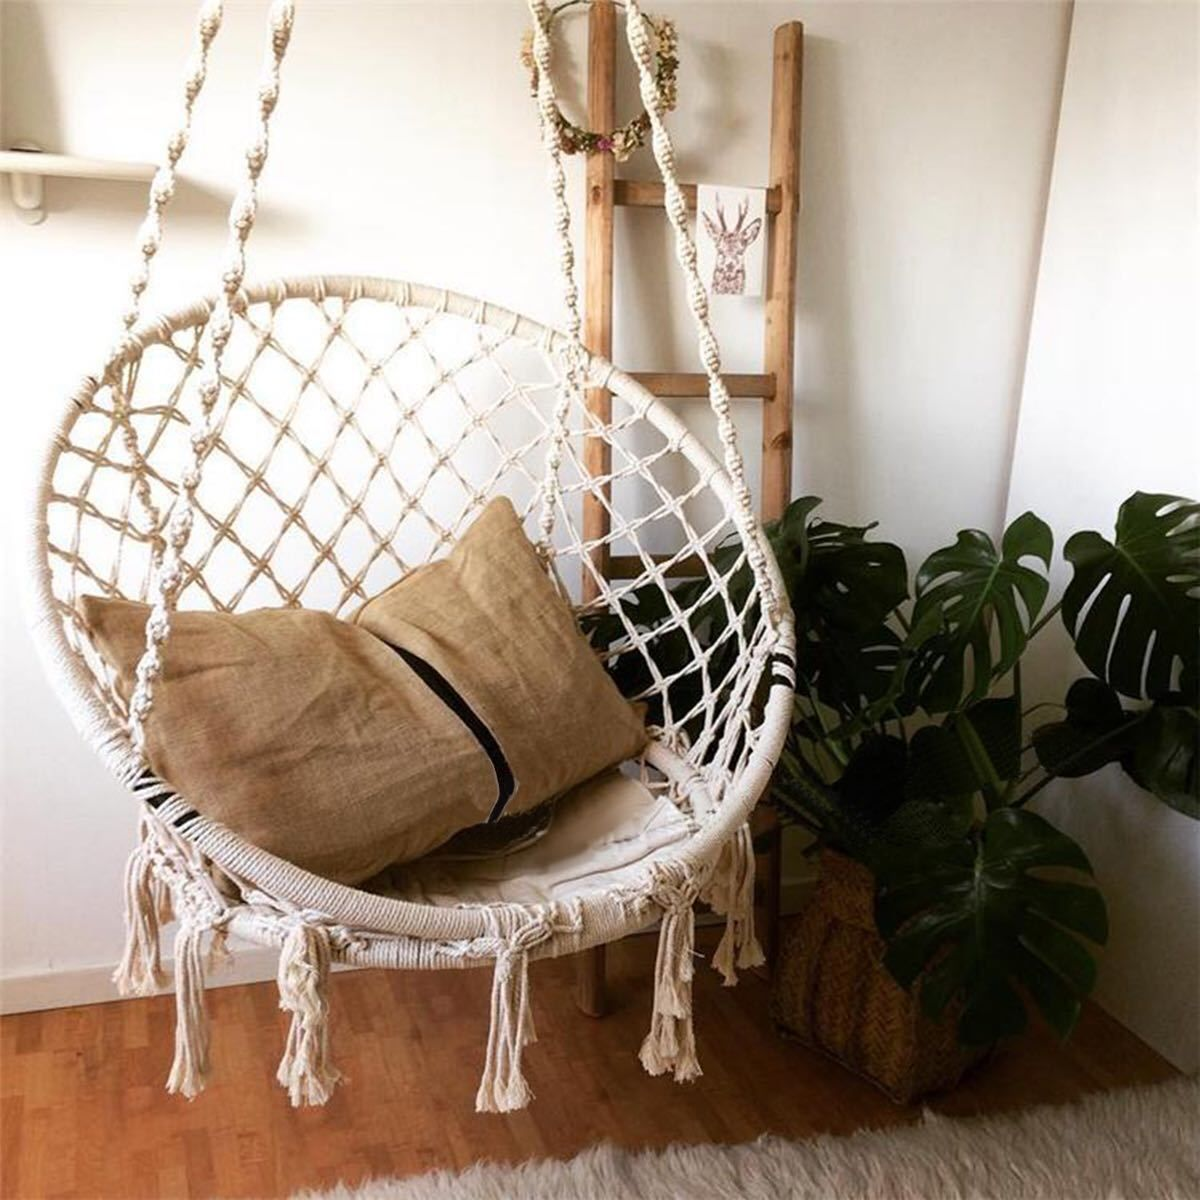 Macrame swing net chair can be used as a light cradle and